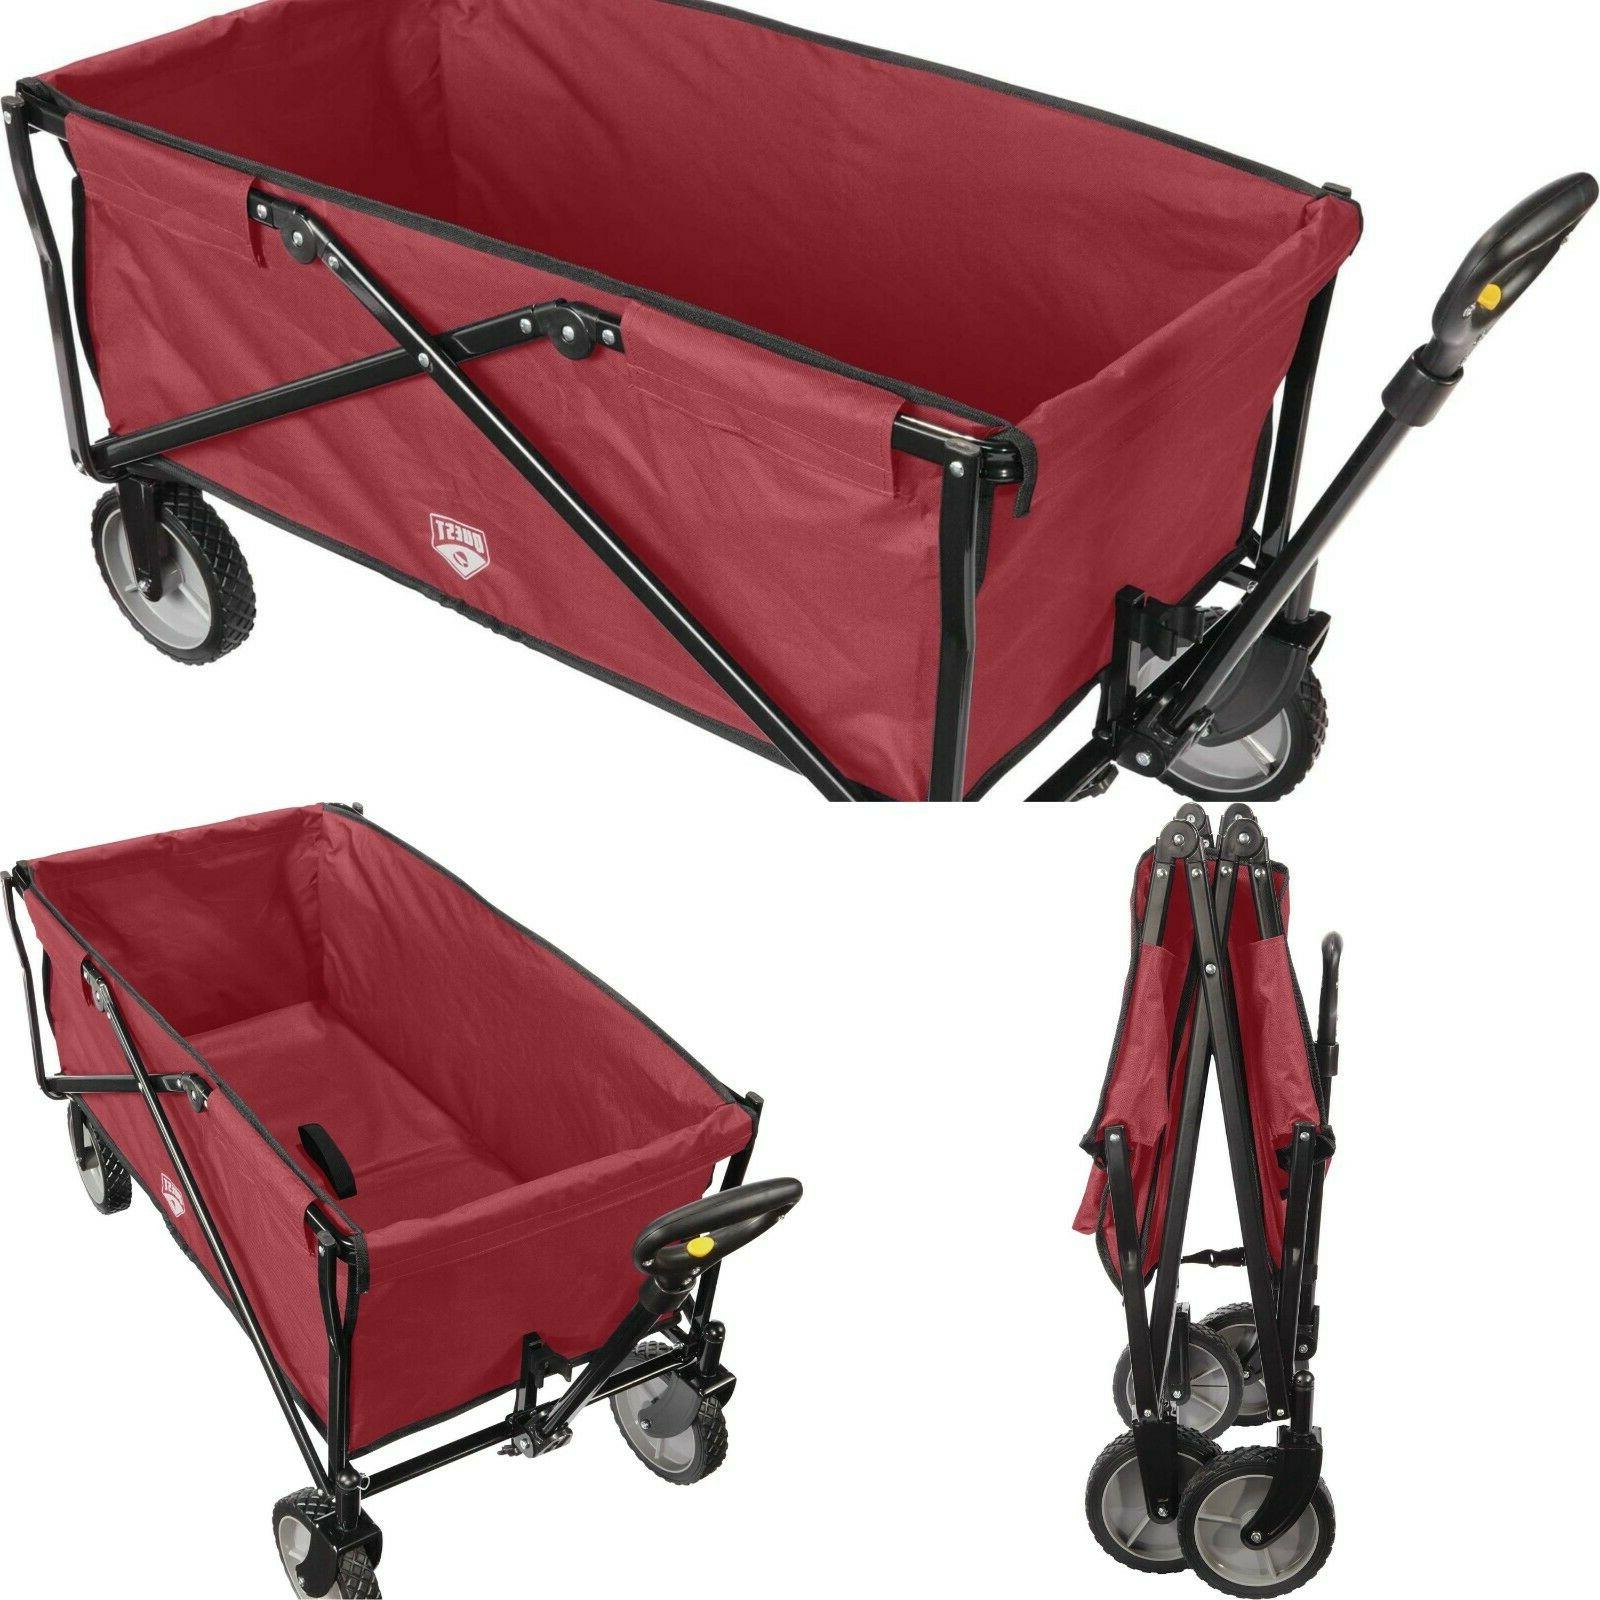 Wagon Garden Utility Outdoor Buggy Sports